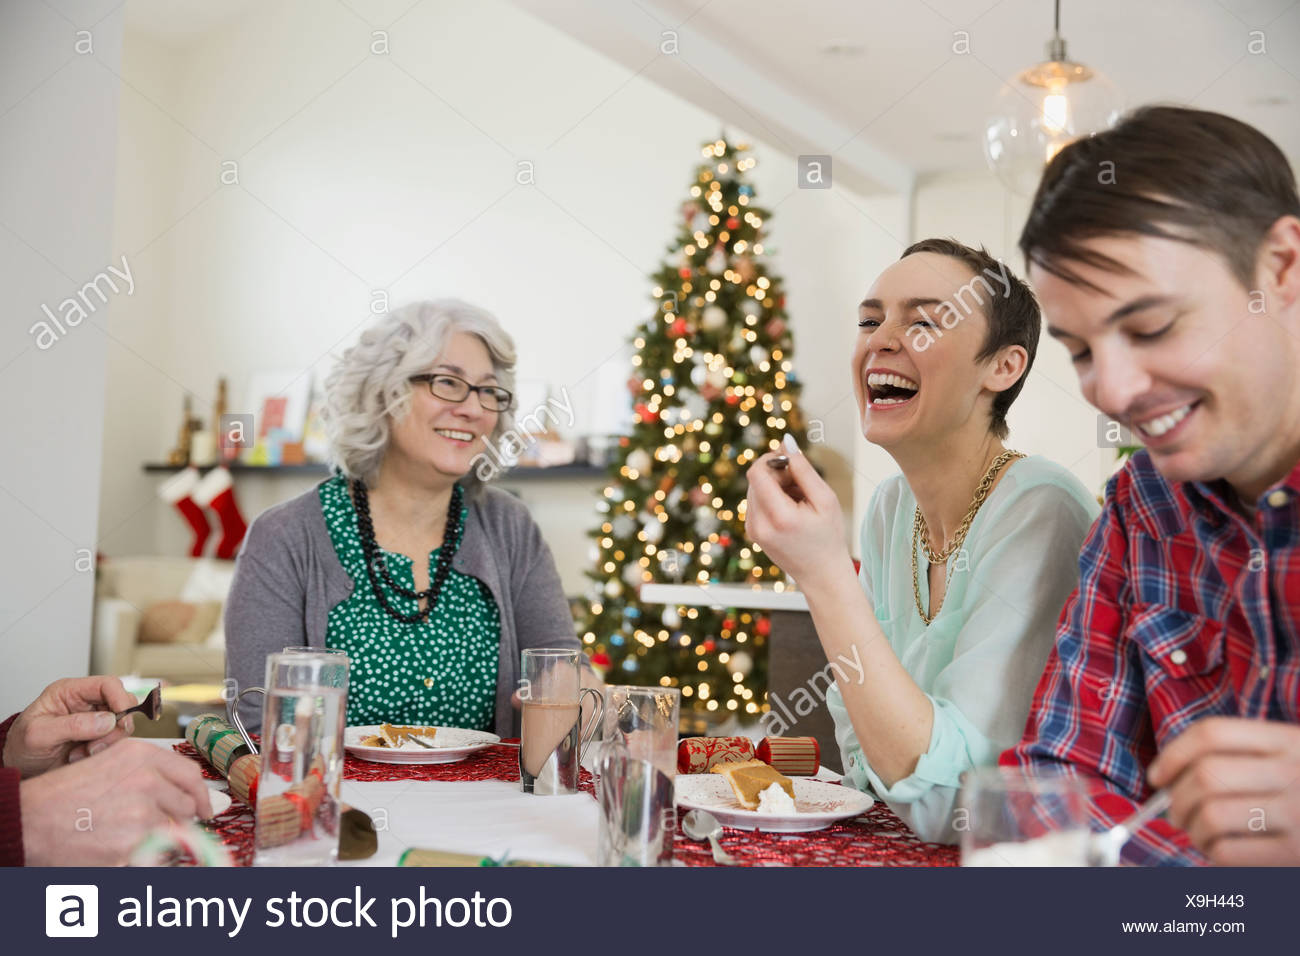 Family enjoying Christmas meal together Photo Stock